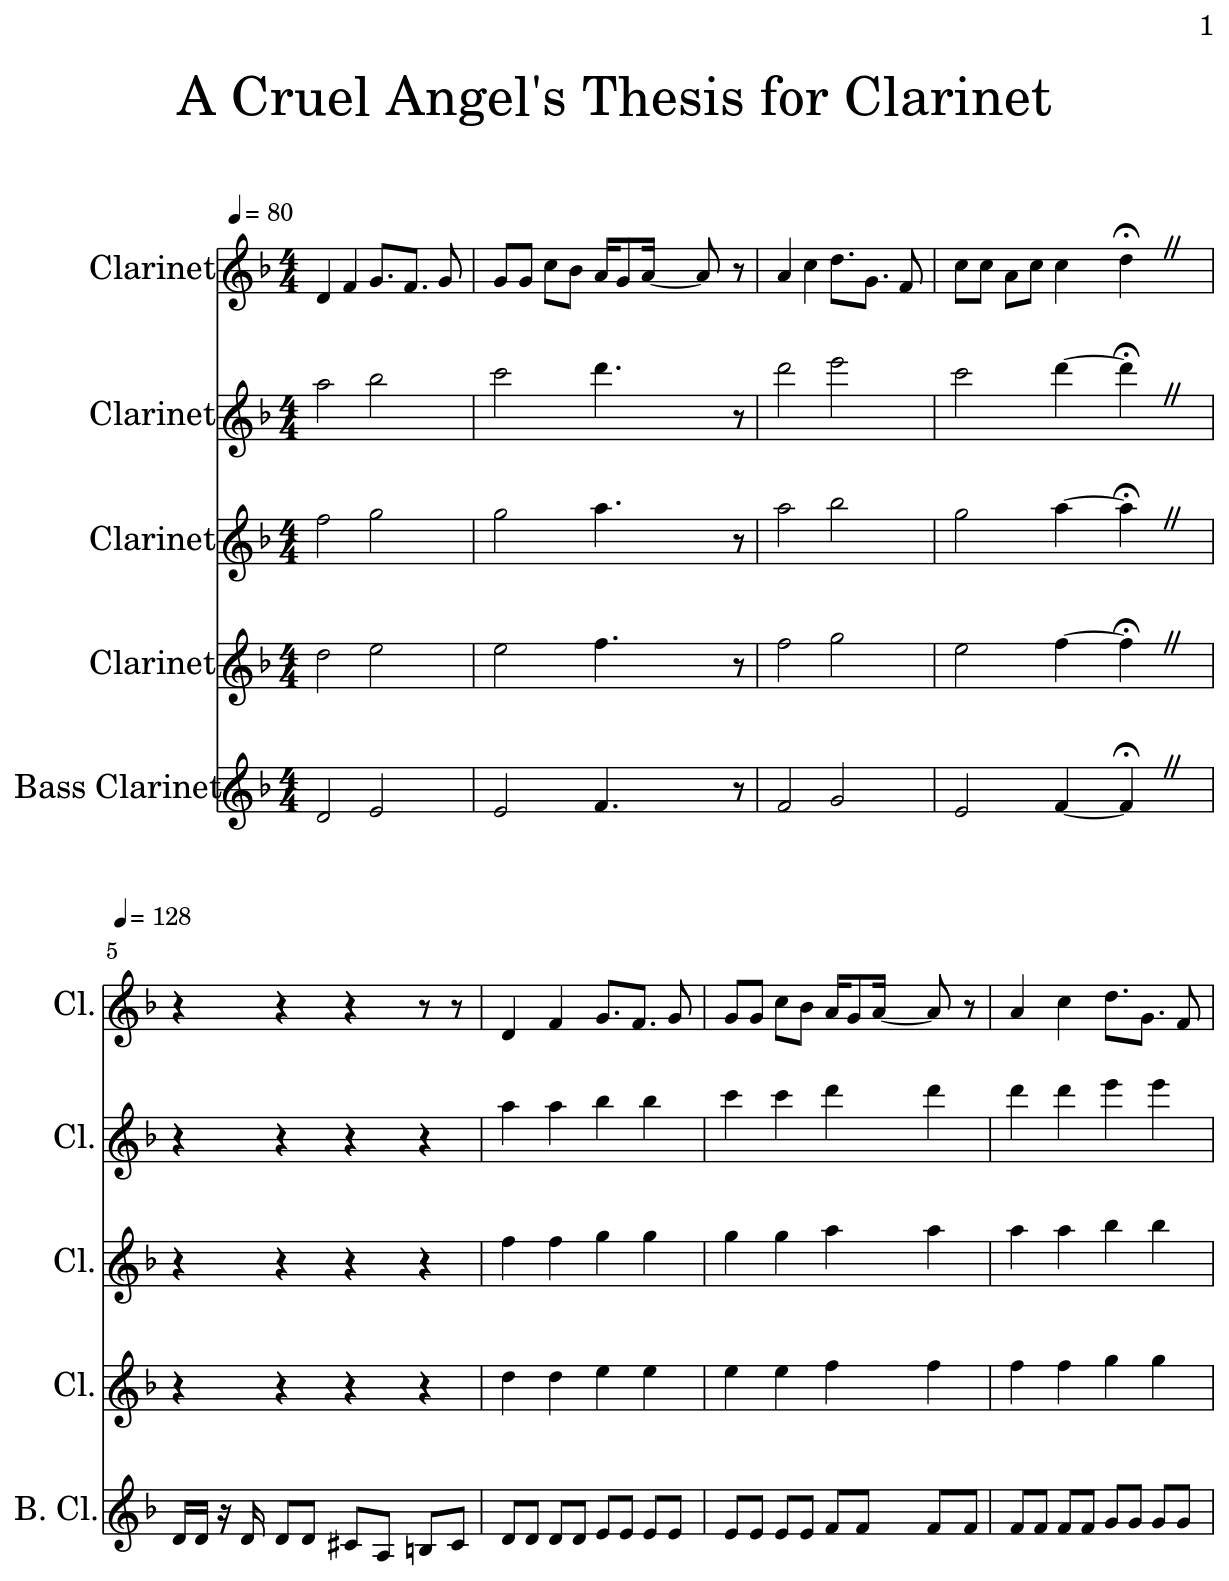 cruel angels thesis clarinet